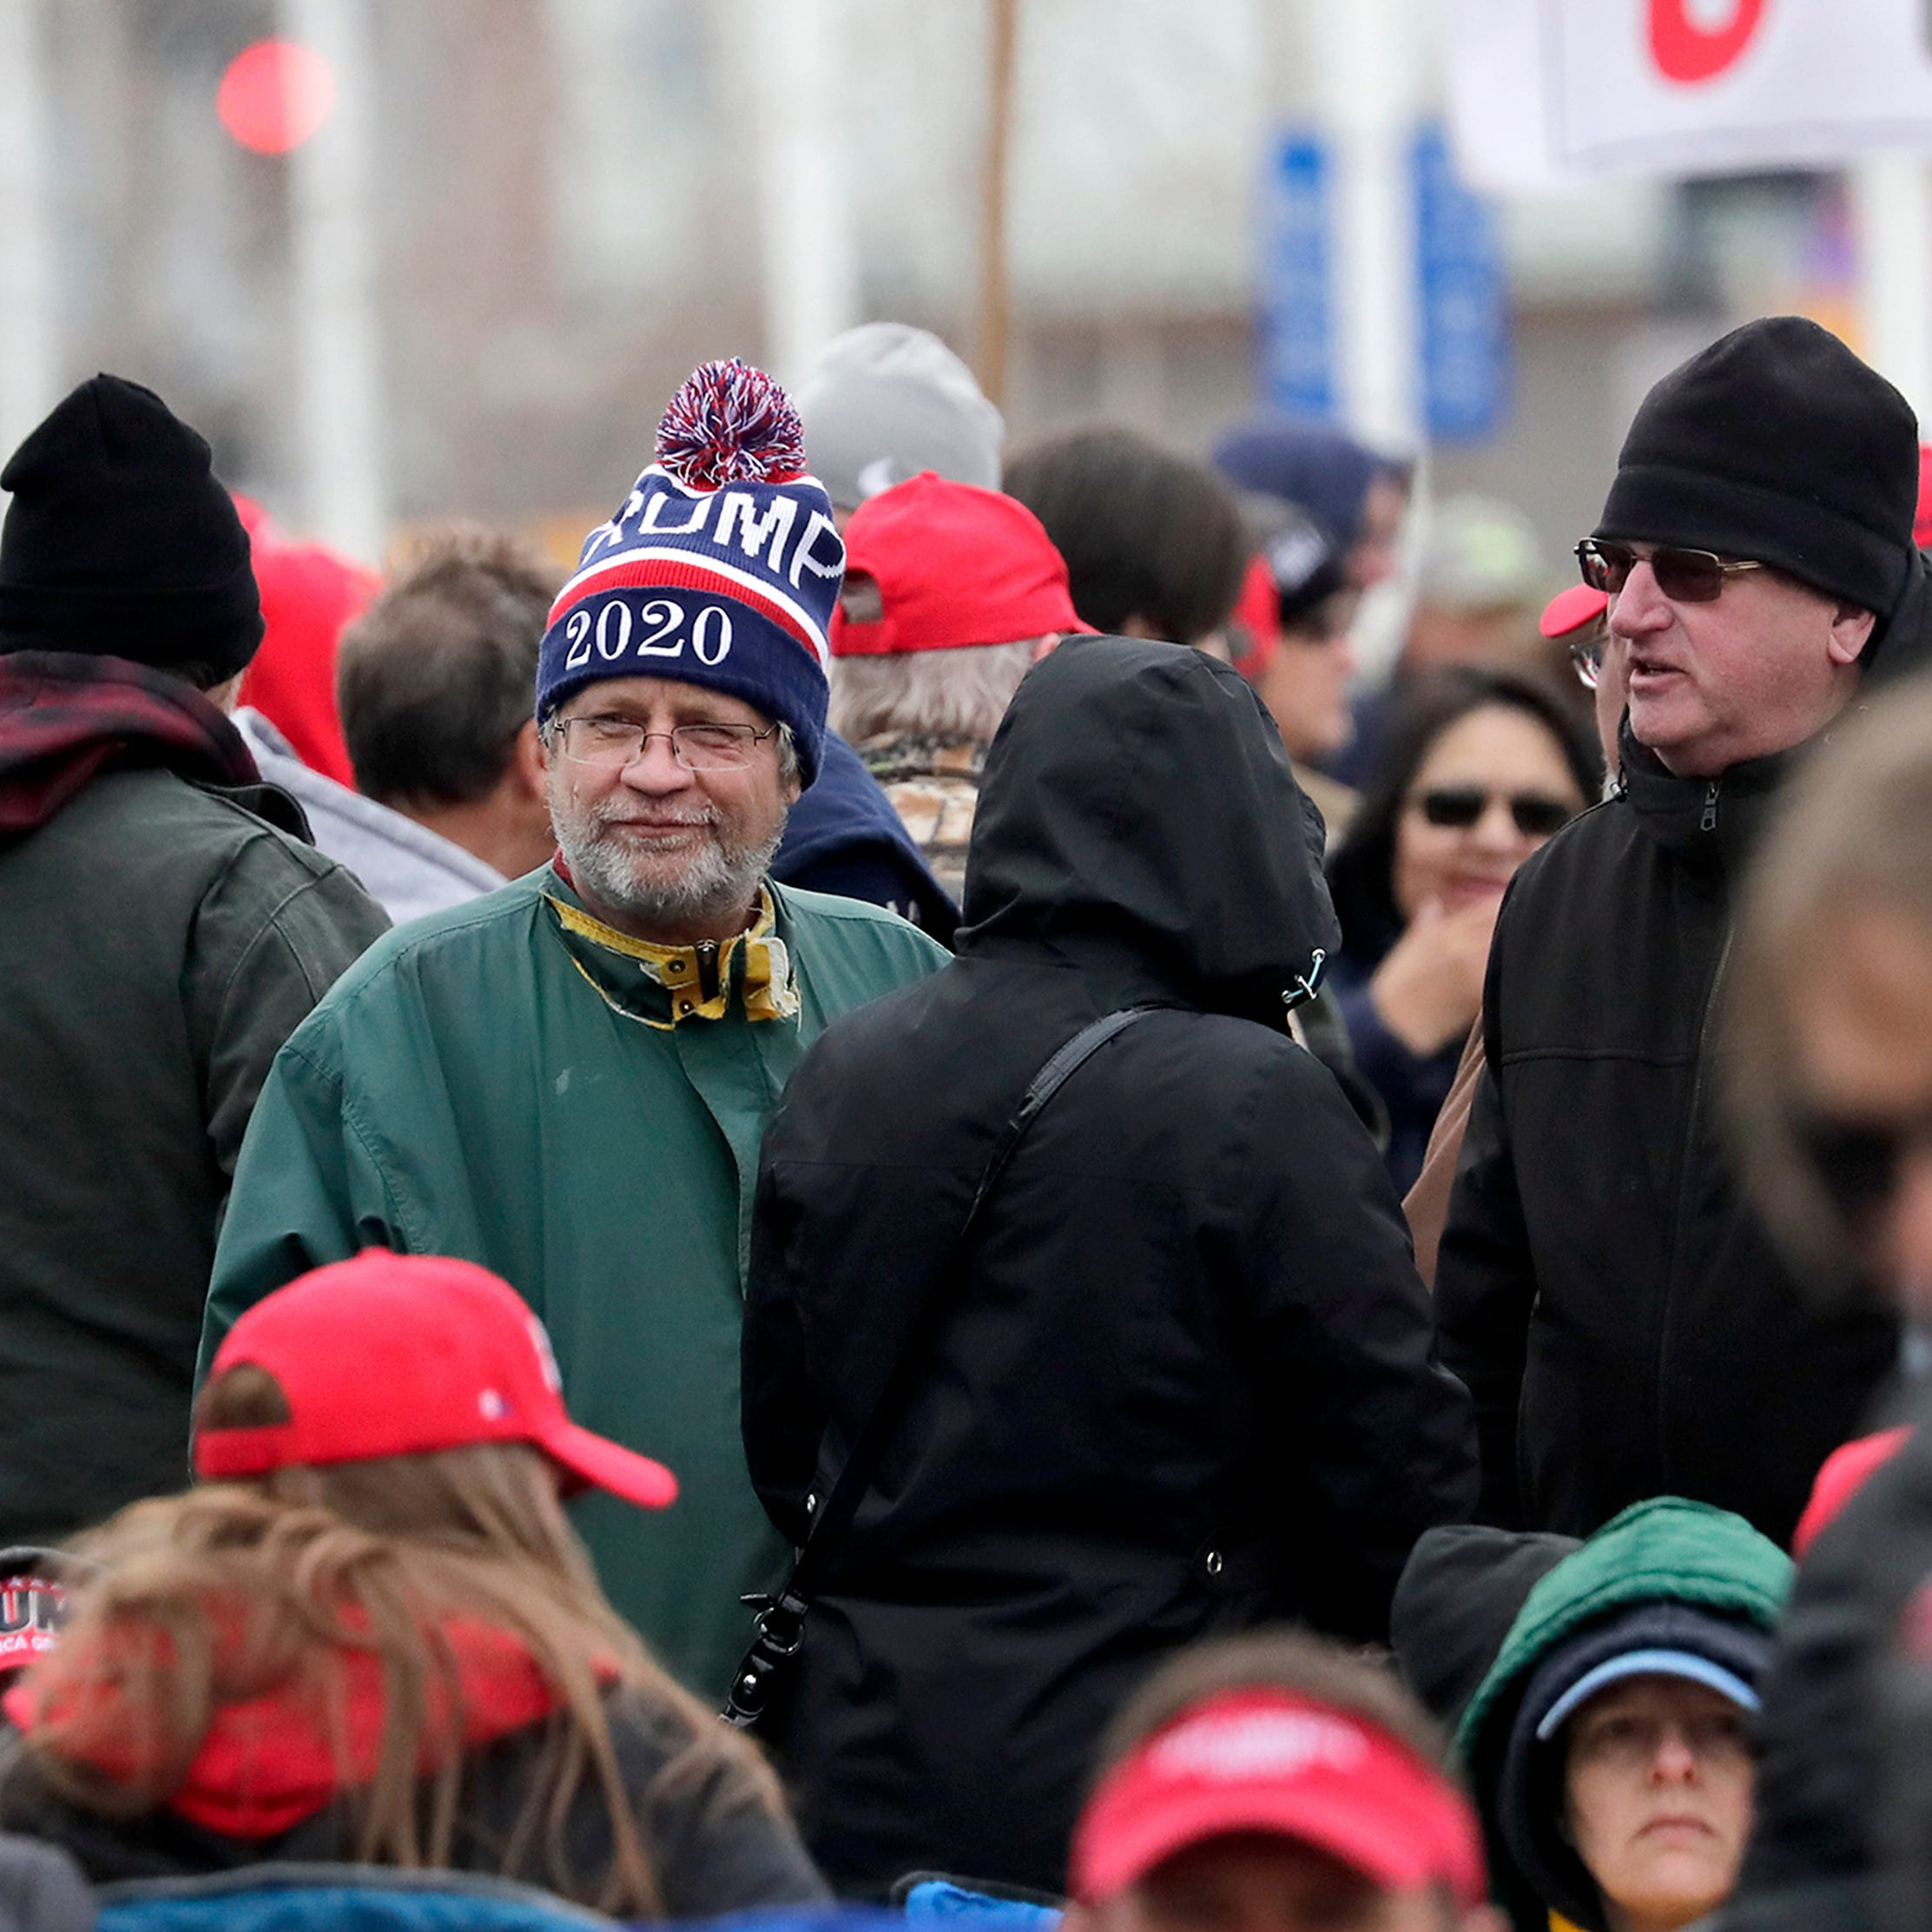 Donald Trump's Green Bay rally: Scenes from outside the Resch Center